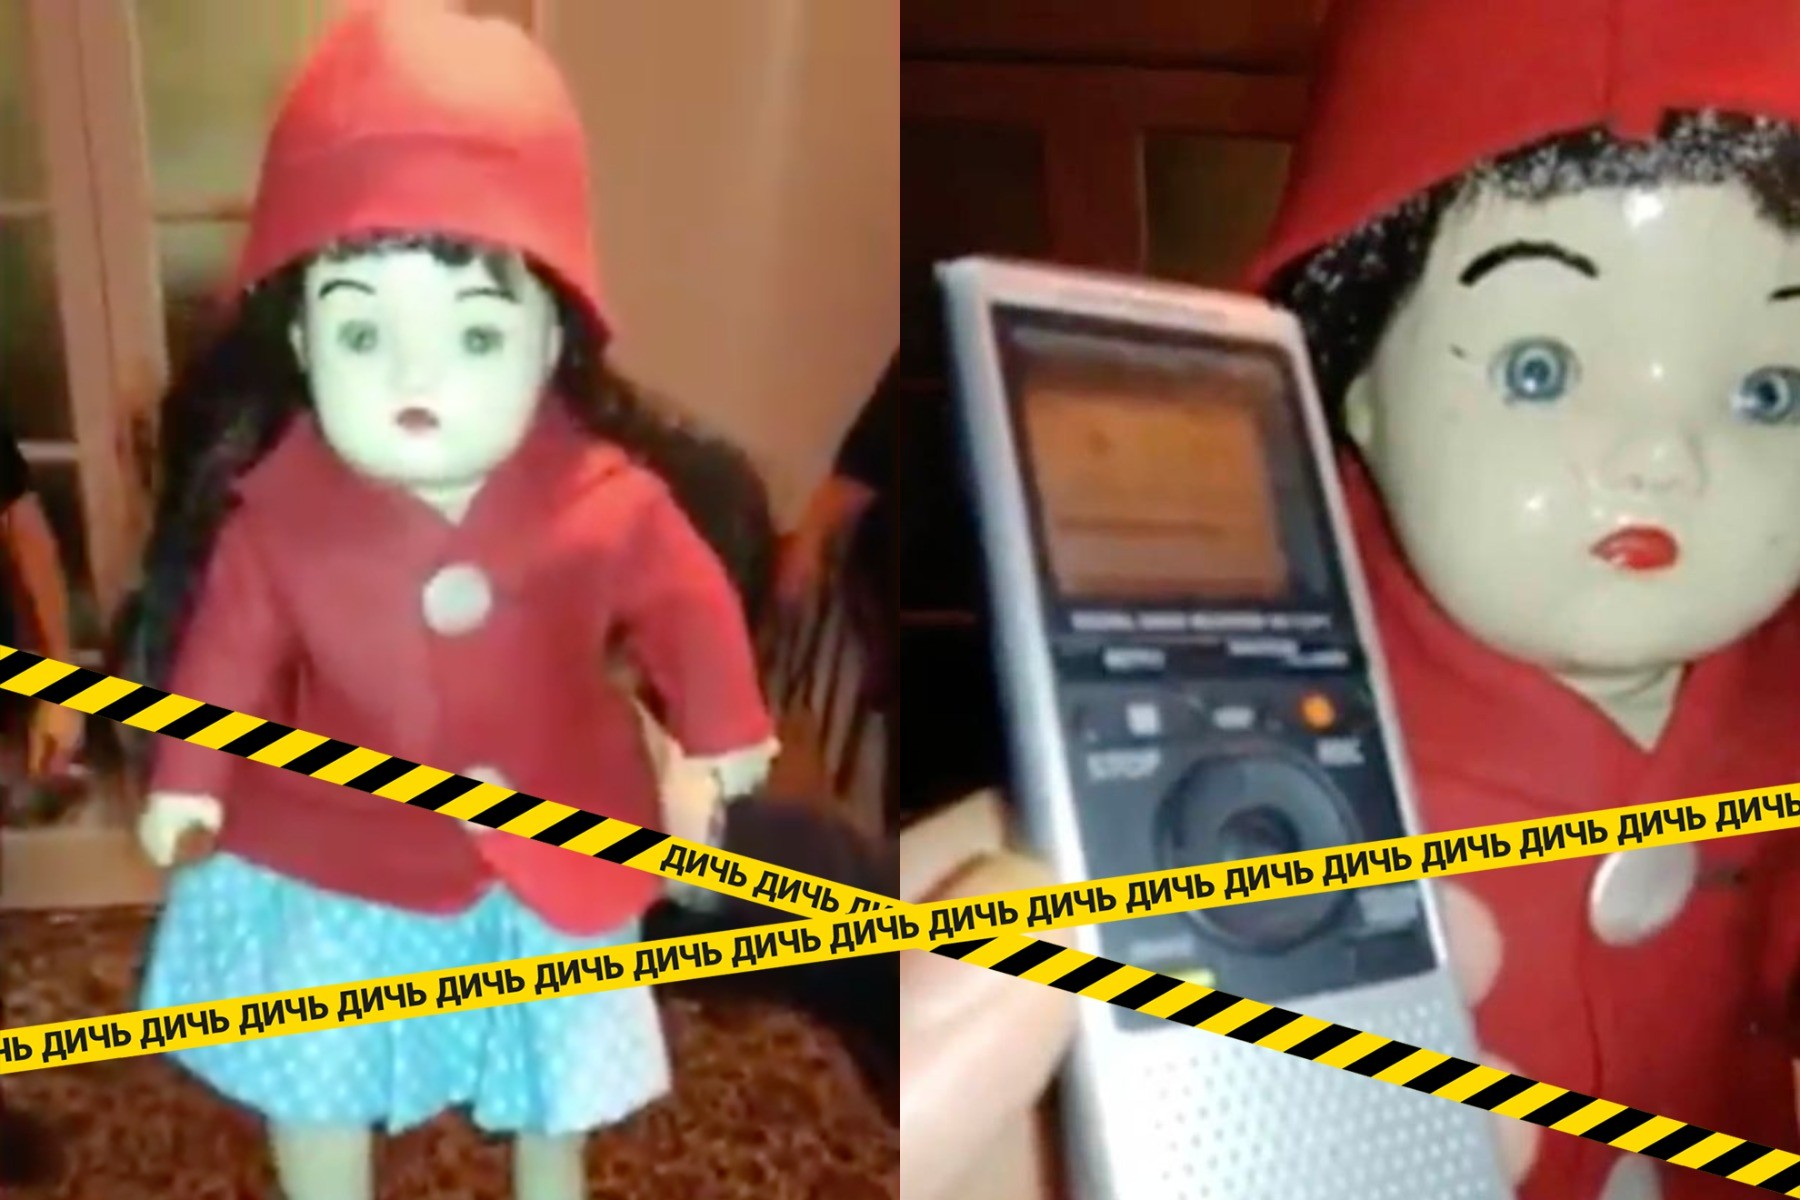 """<p>Фото © <a href=""""https://dailystar.co.uk/news/weird-news/most-foul-mouthed-haunted-doll-20578051"""" target=""""_self"""">Daily Star</a></p>"""